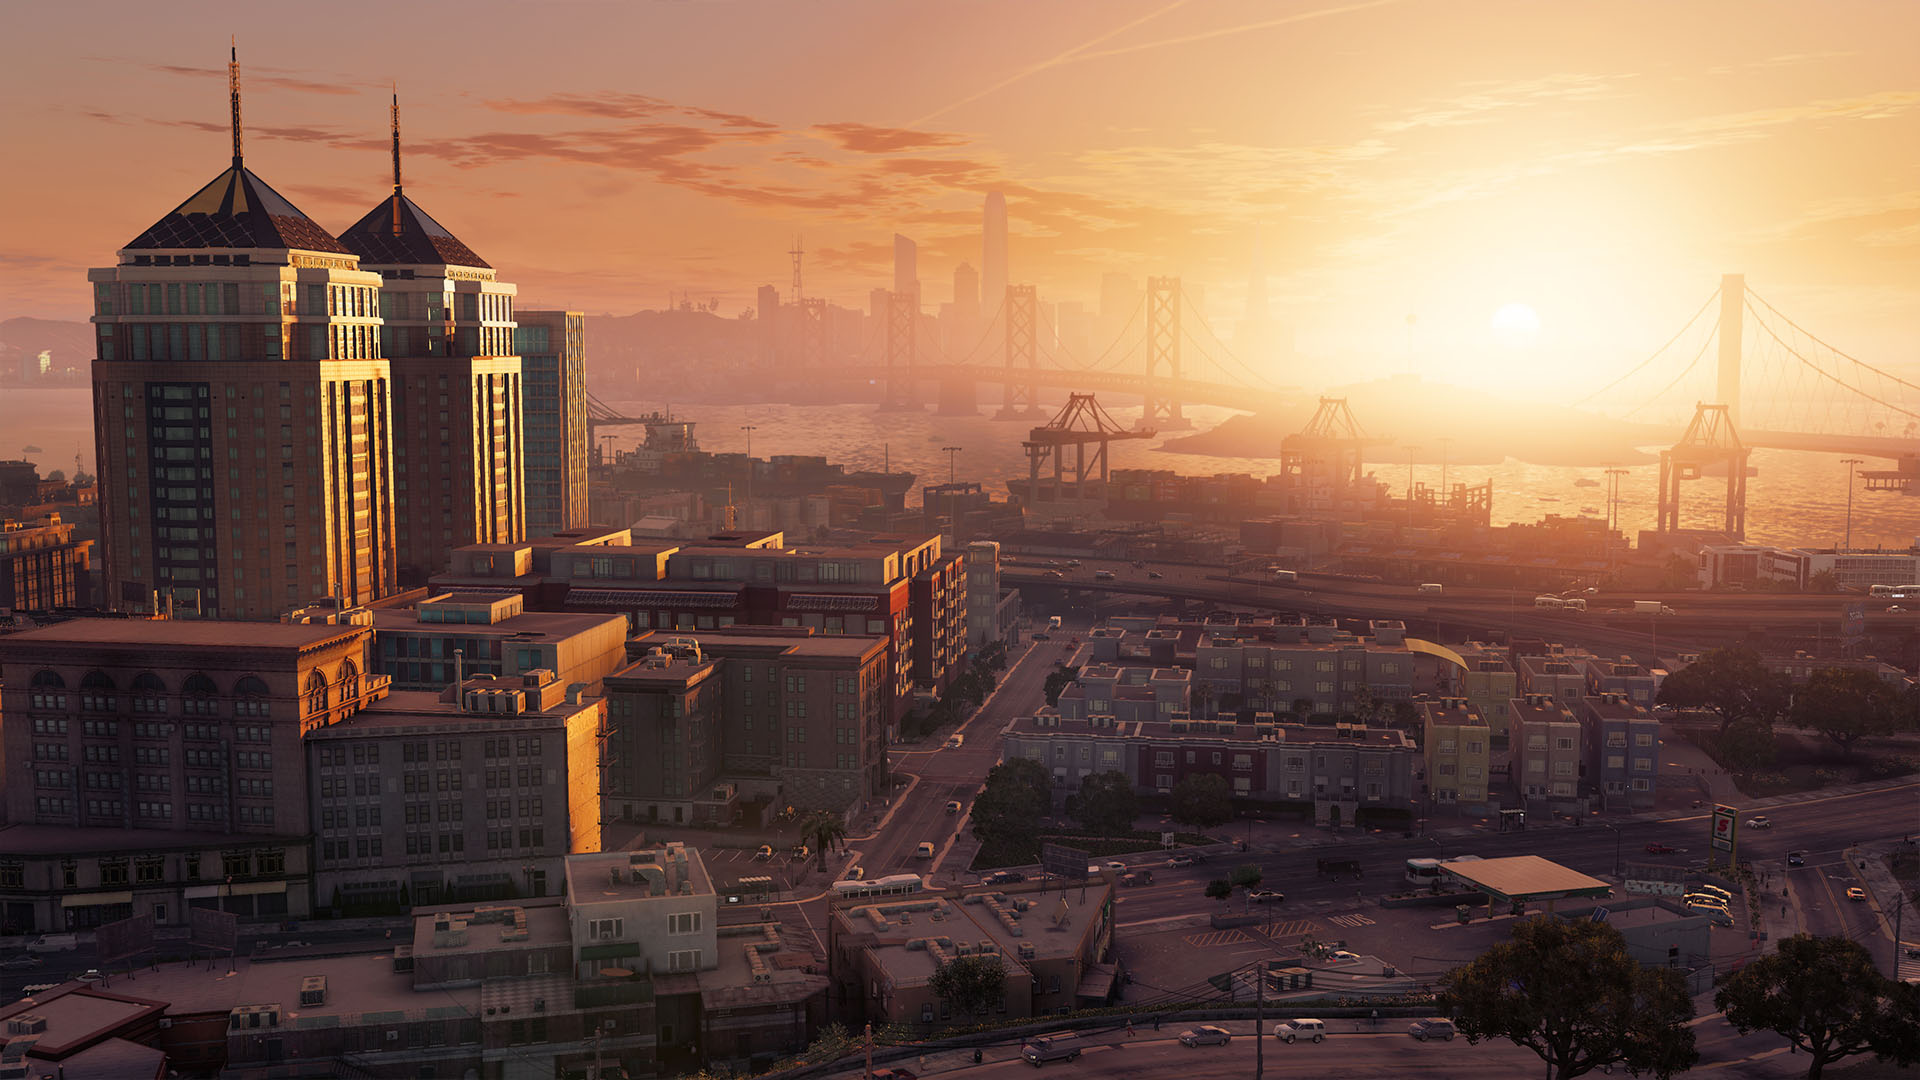 https://ubistatic9-a.akamaihd.net/resource/en-US/game/watchdogs/watchdogs/wd_media_screens-gc-oakland_ncsa.jpg